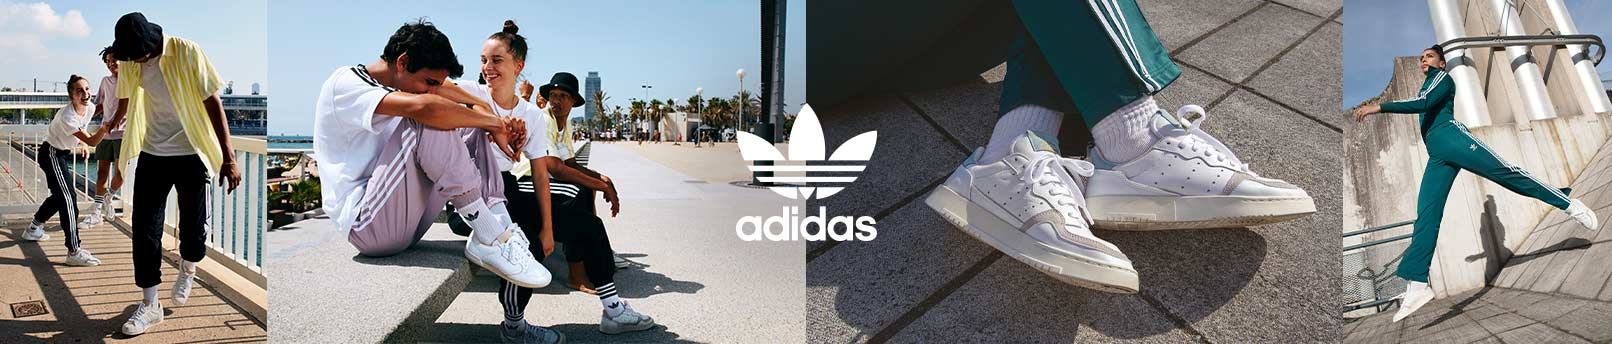 Shop adidas Supercourt